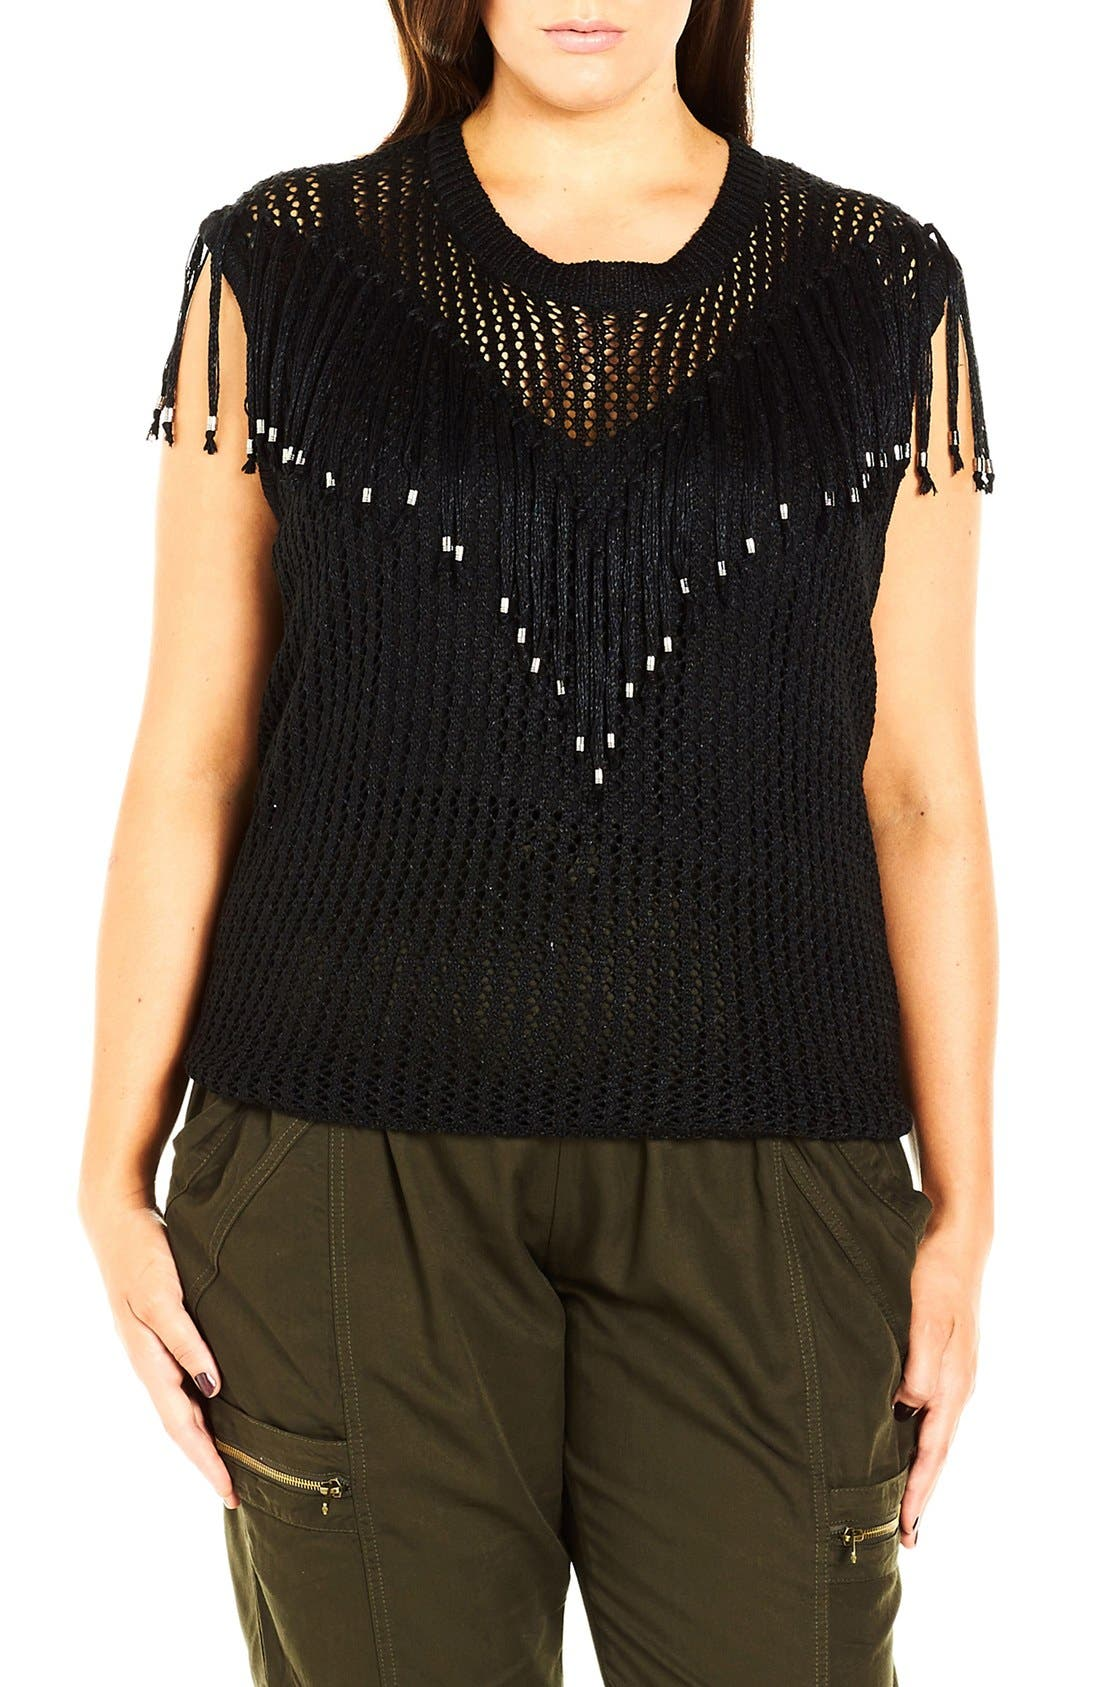 CITY CHIC 'Fringe Fever' Sleeveless Sweater